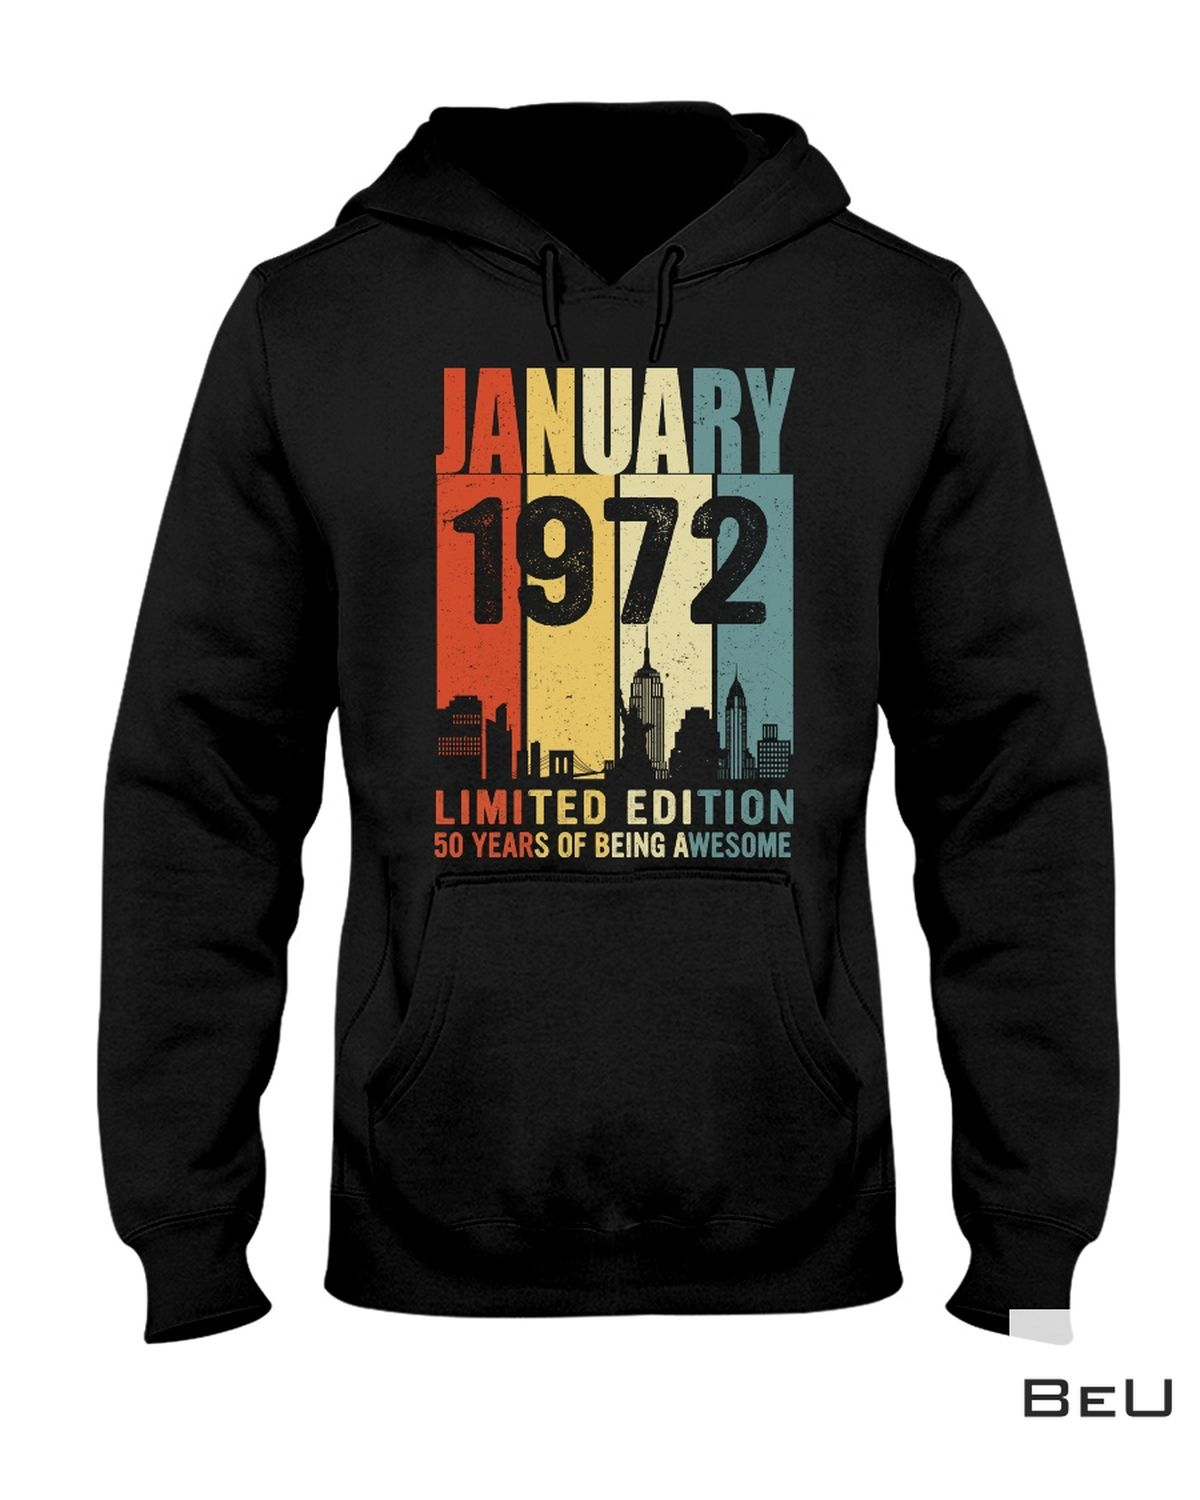 January 1972 Limited Edition 50 Years Of Being Awesome Shirtz